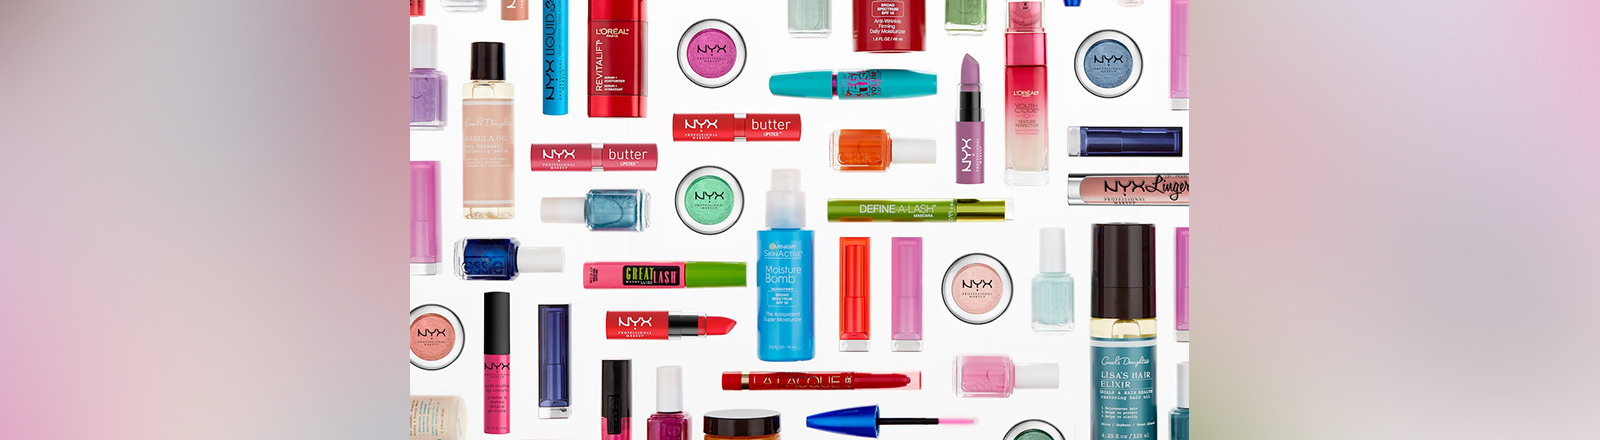 LOREAL_USA_CPD_Updated-NYX-products_1600